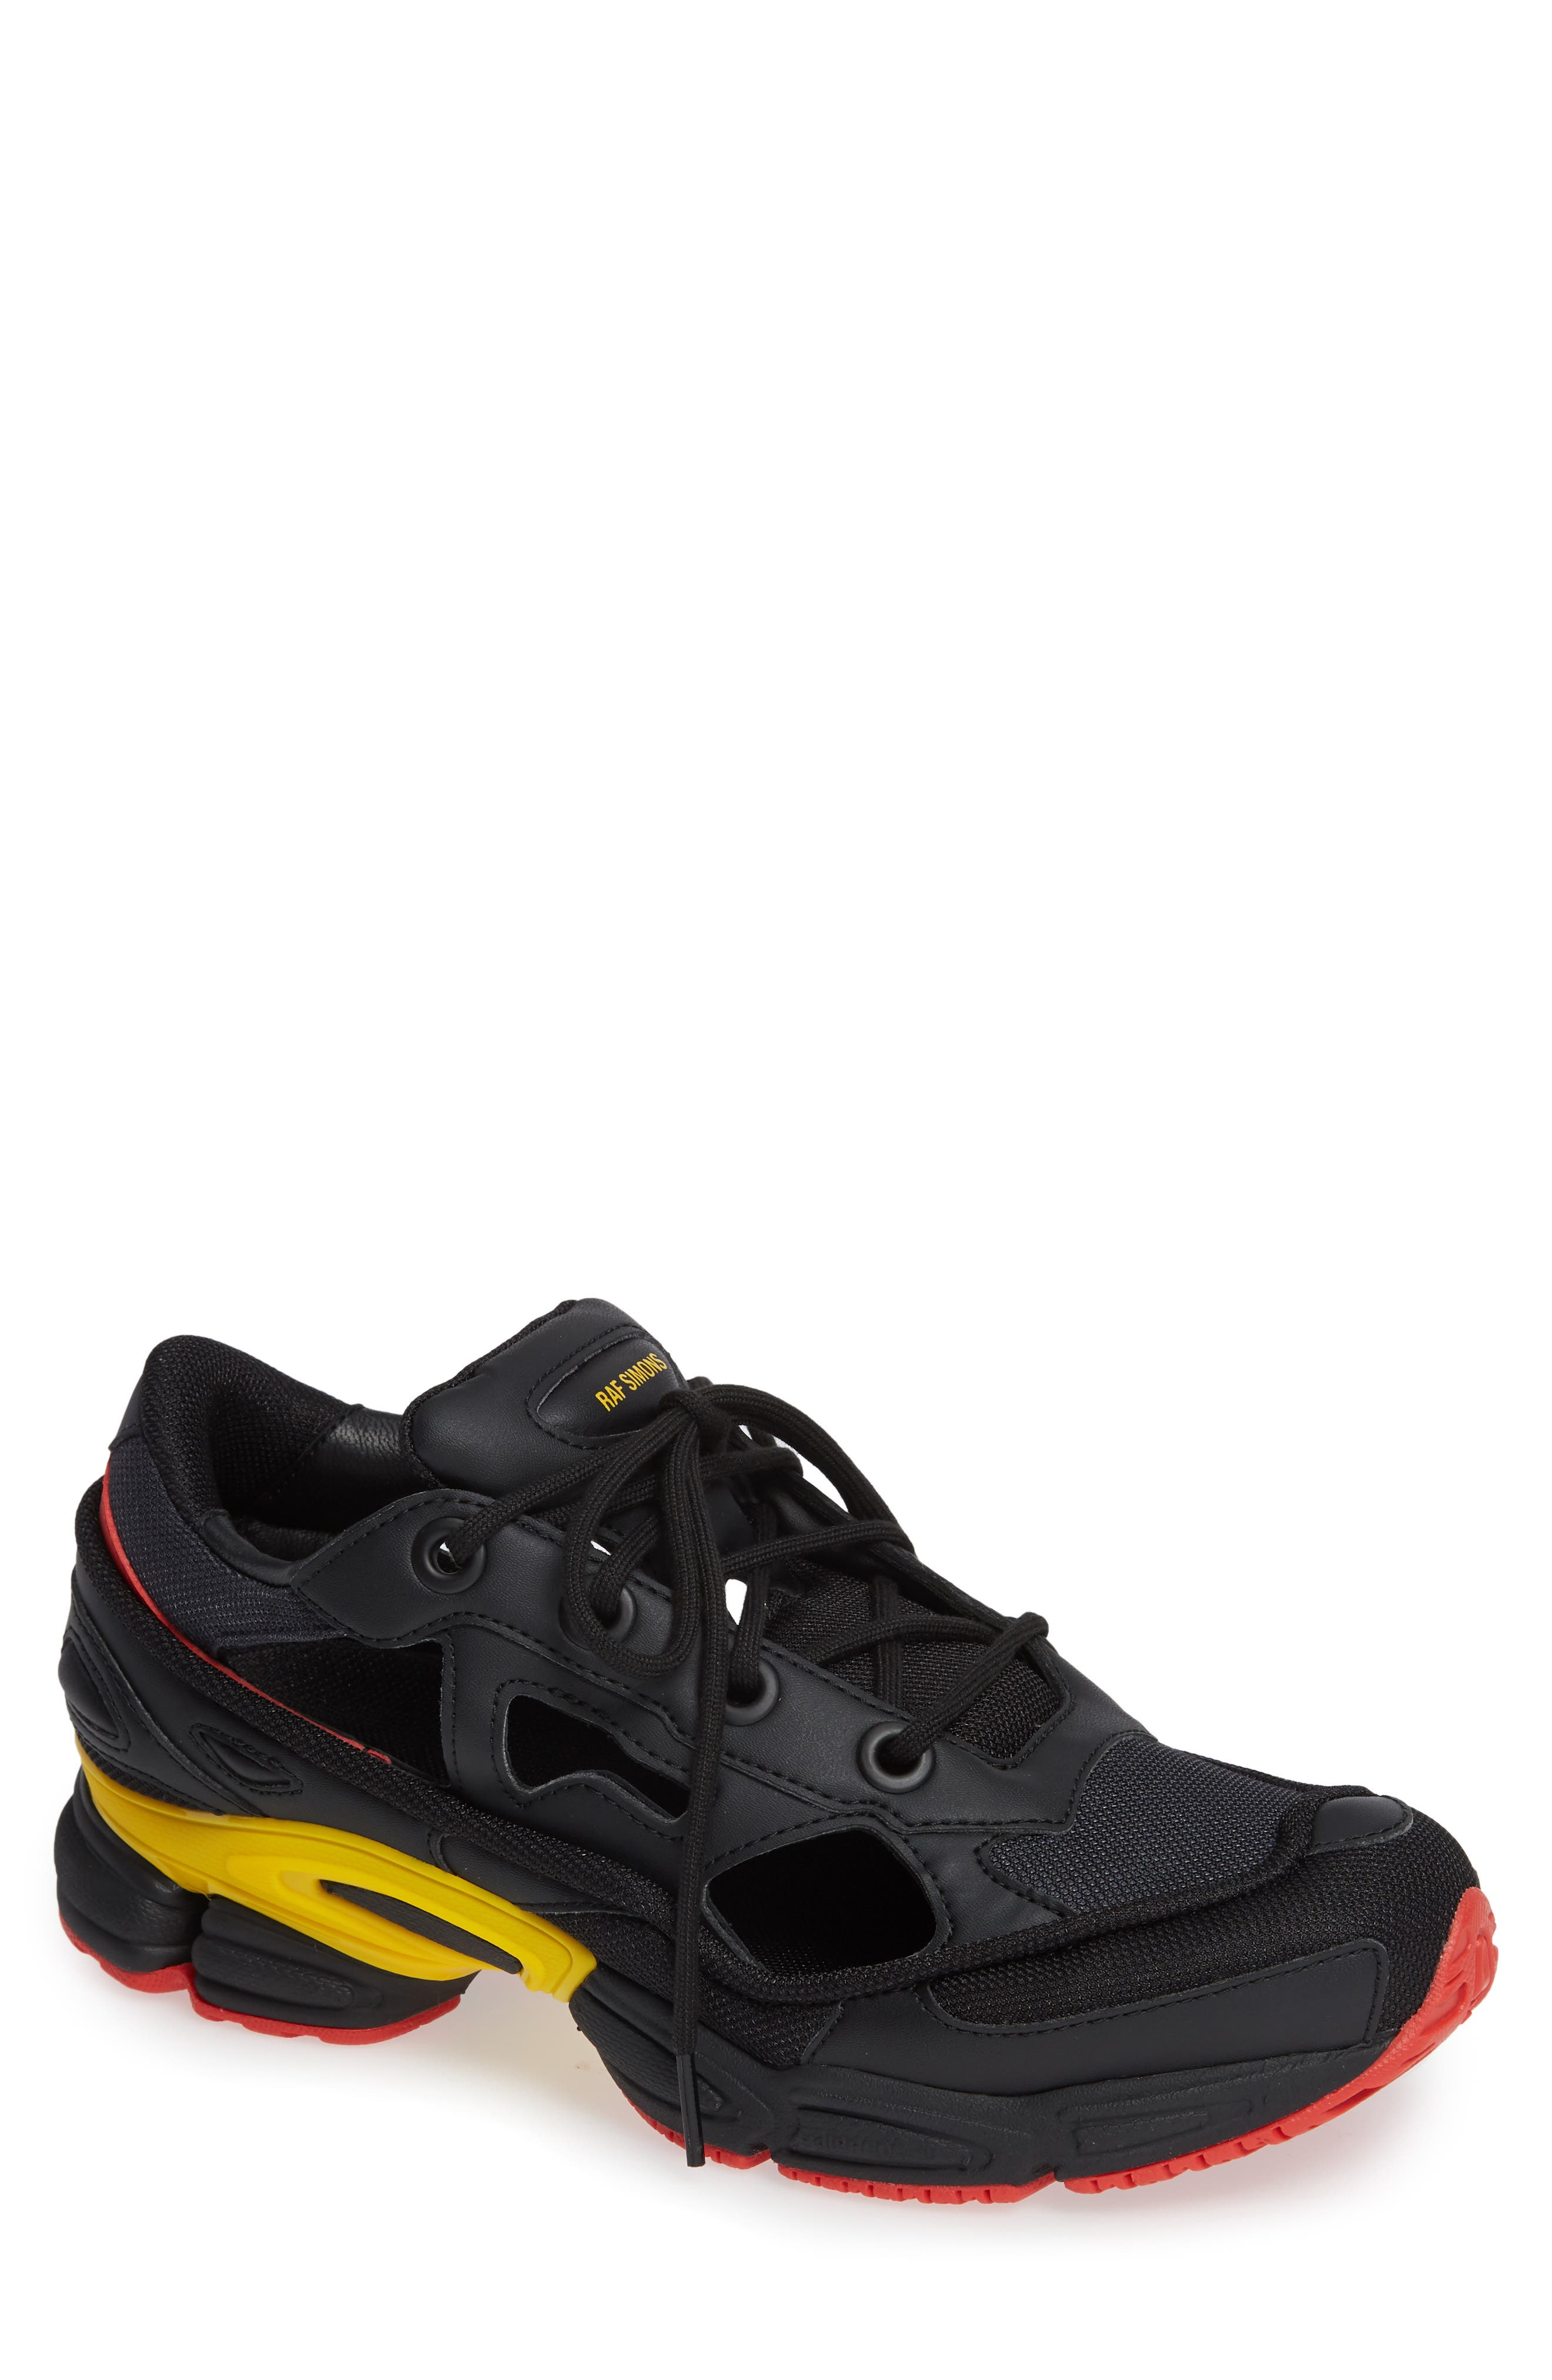 adidas by Raf Simons Replicant Ozweego Sneaker,                         Main,                         color, CORE BLACK/ NIGHT GREY